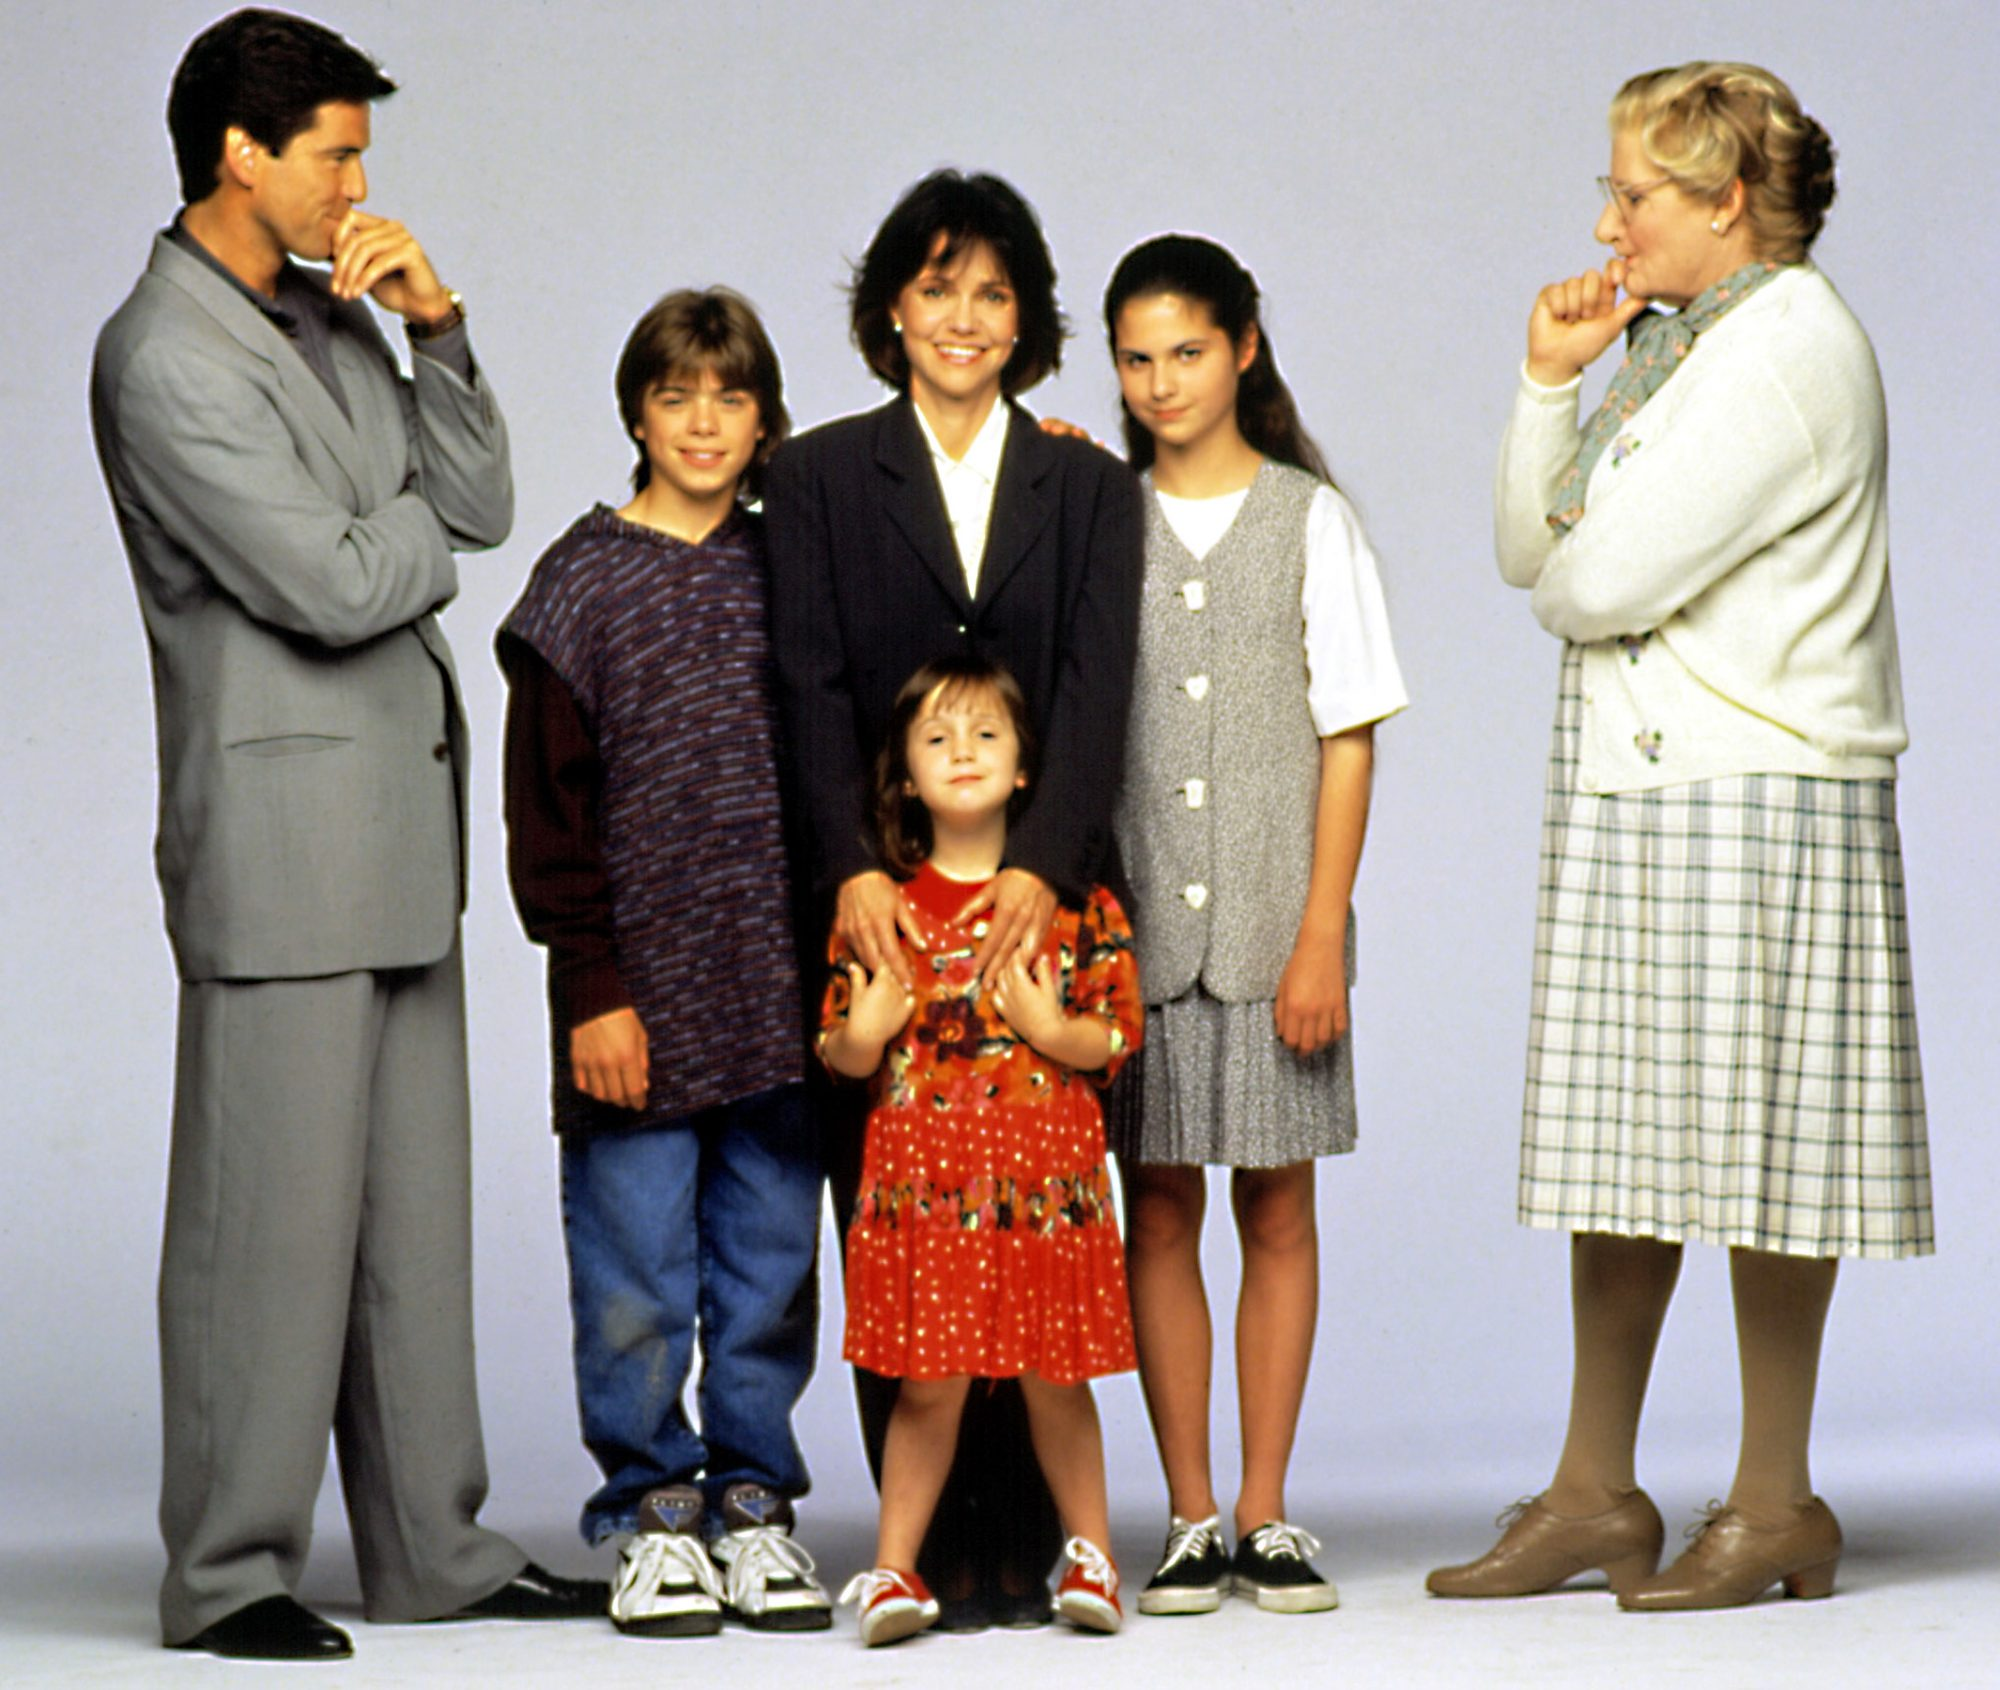 MRS. DOUBTFIRE, Pierce Brosnan, Matthew Lawrence, Sally Field, Mara Wilson, Lisa Jakub, Robin Willia